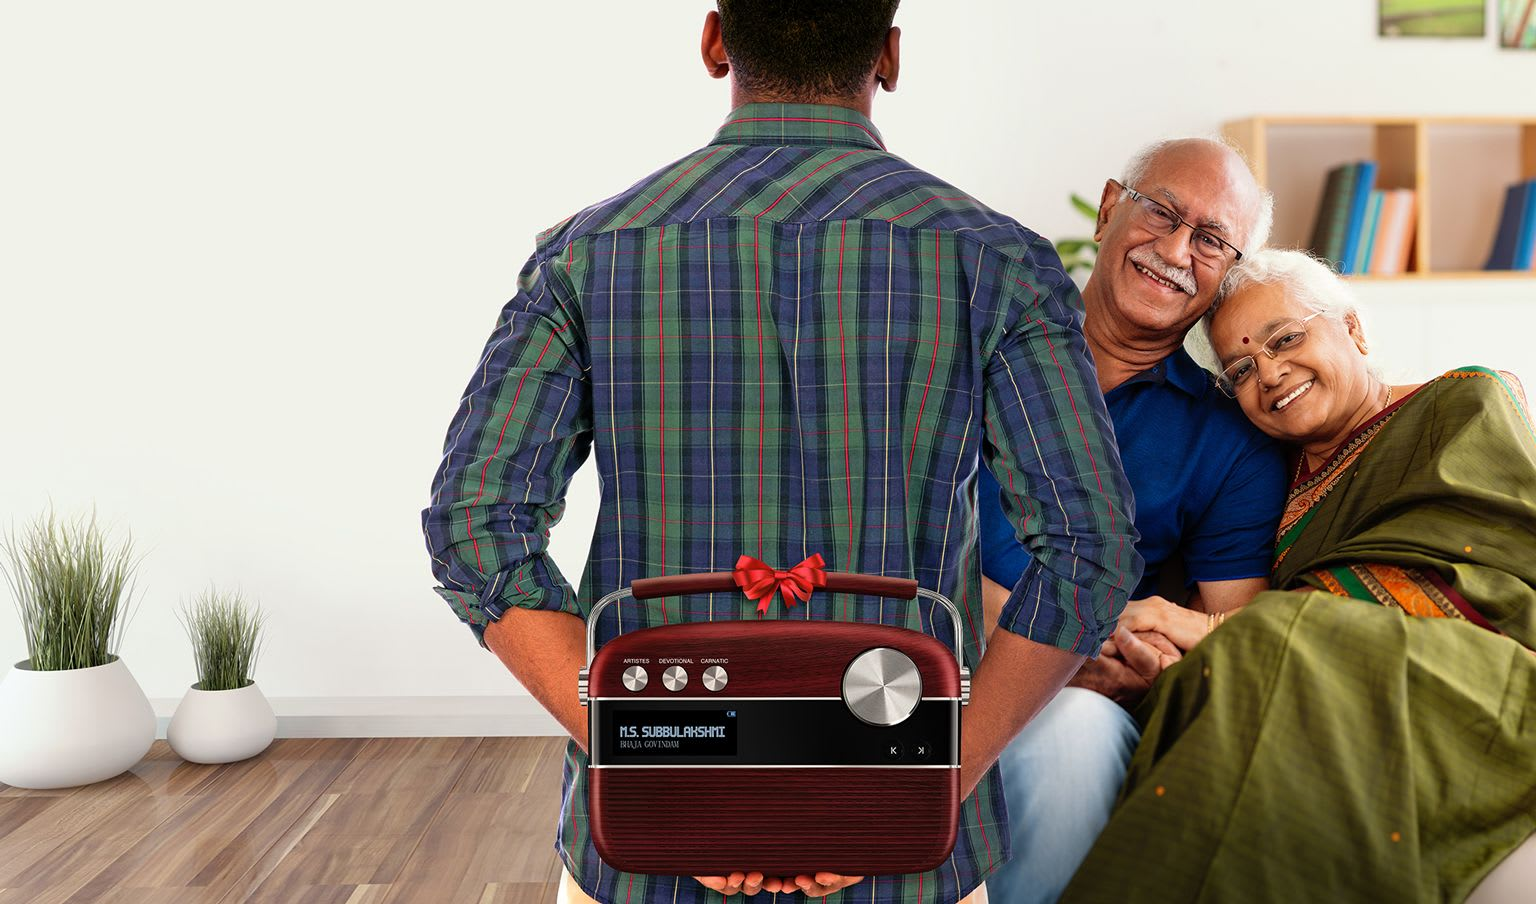 saregama carvaan tamil-perfect gift for music lovers